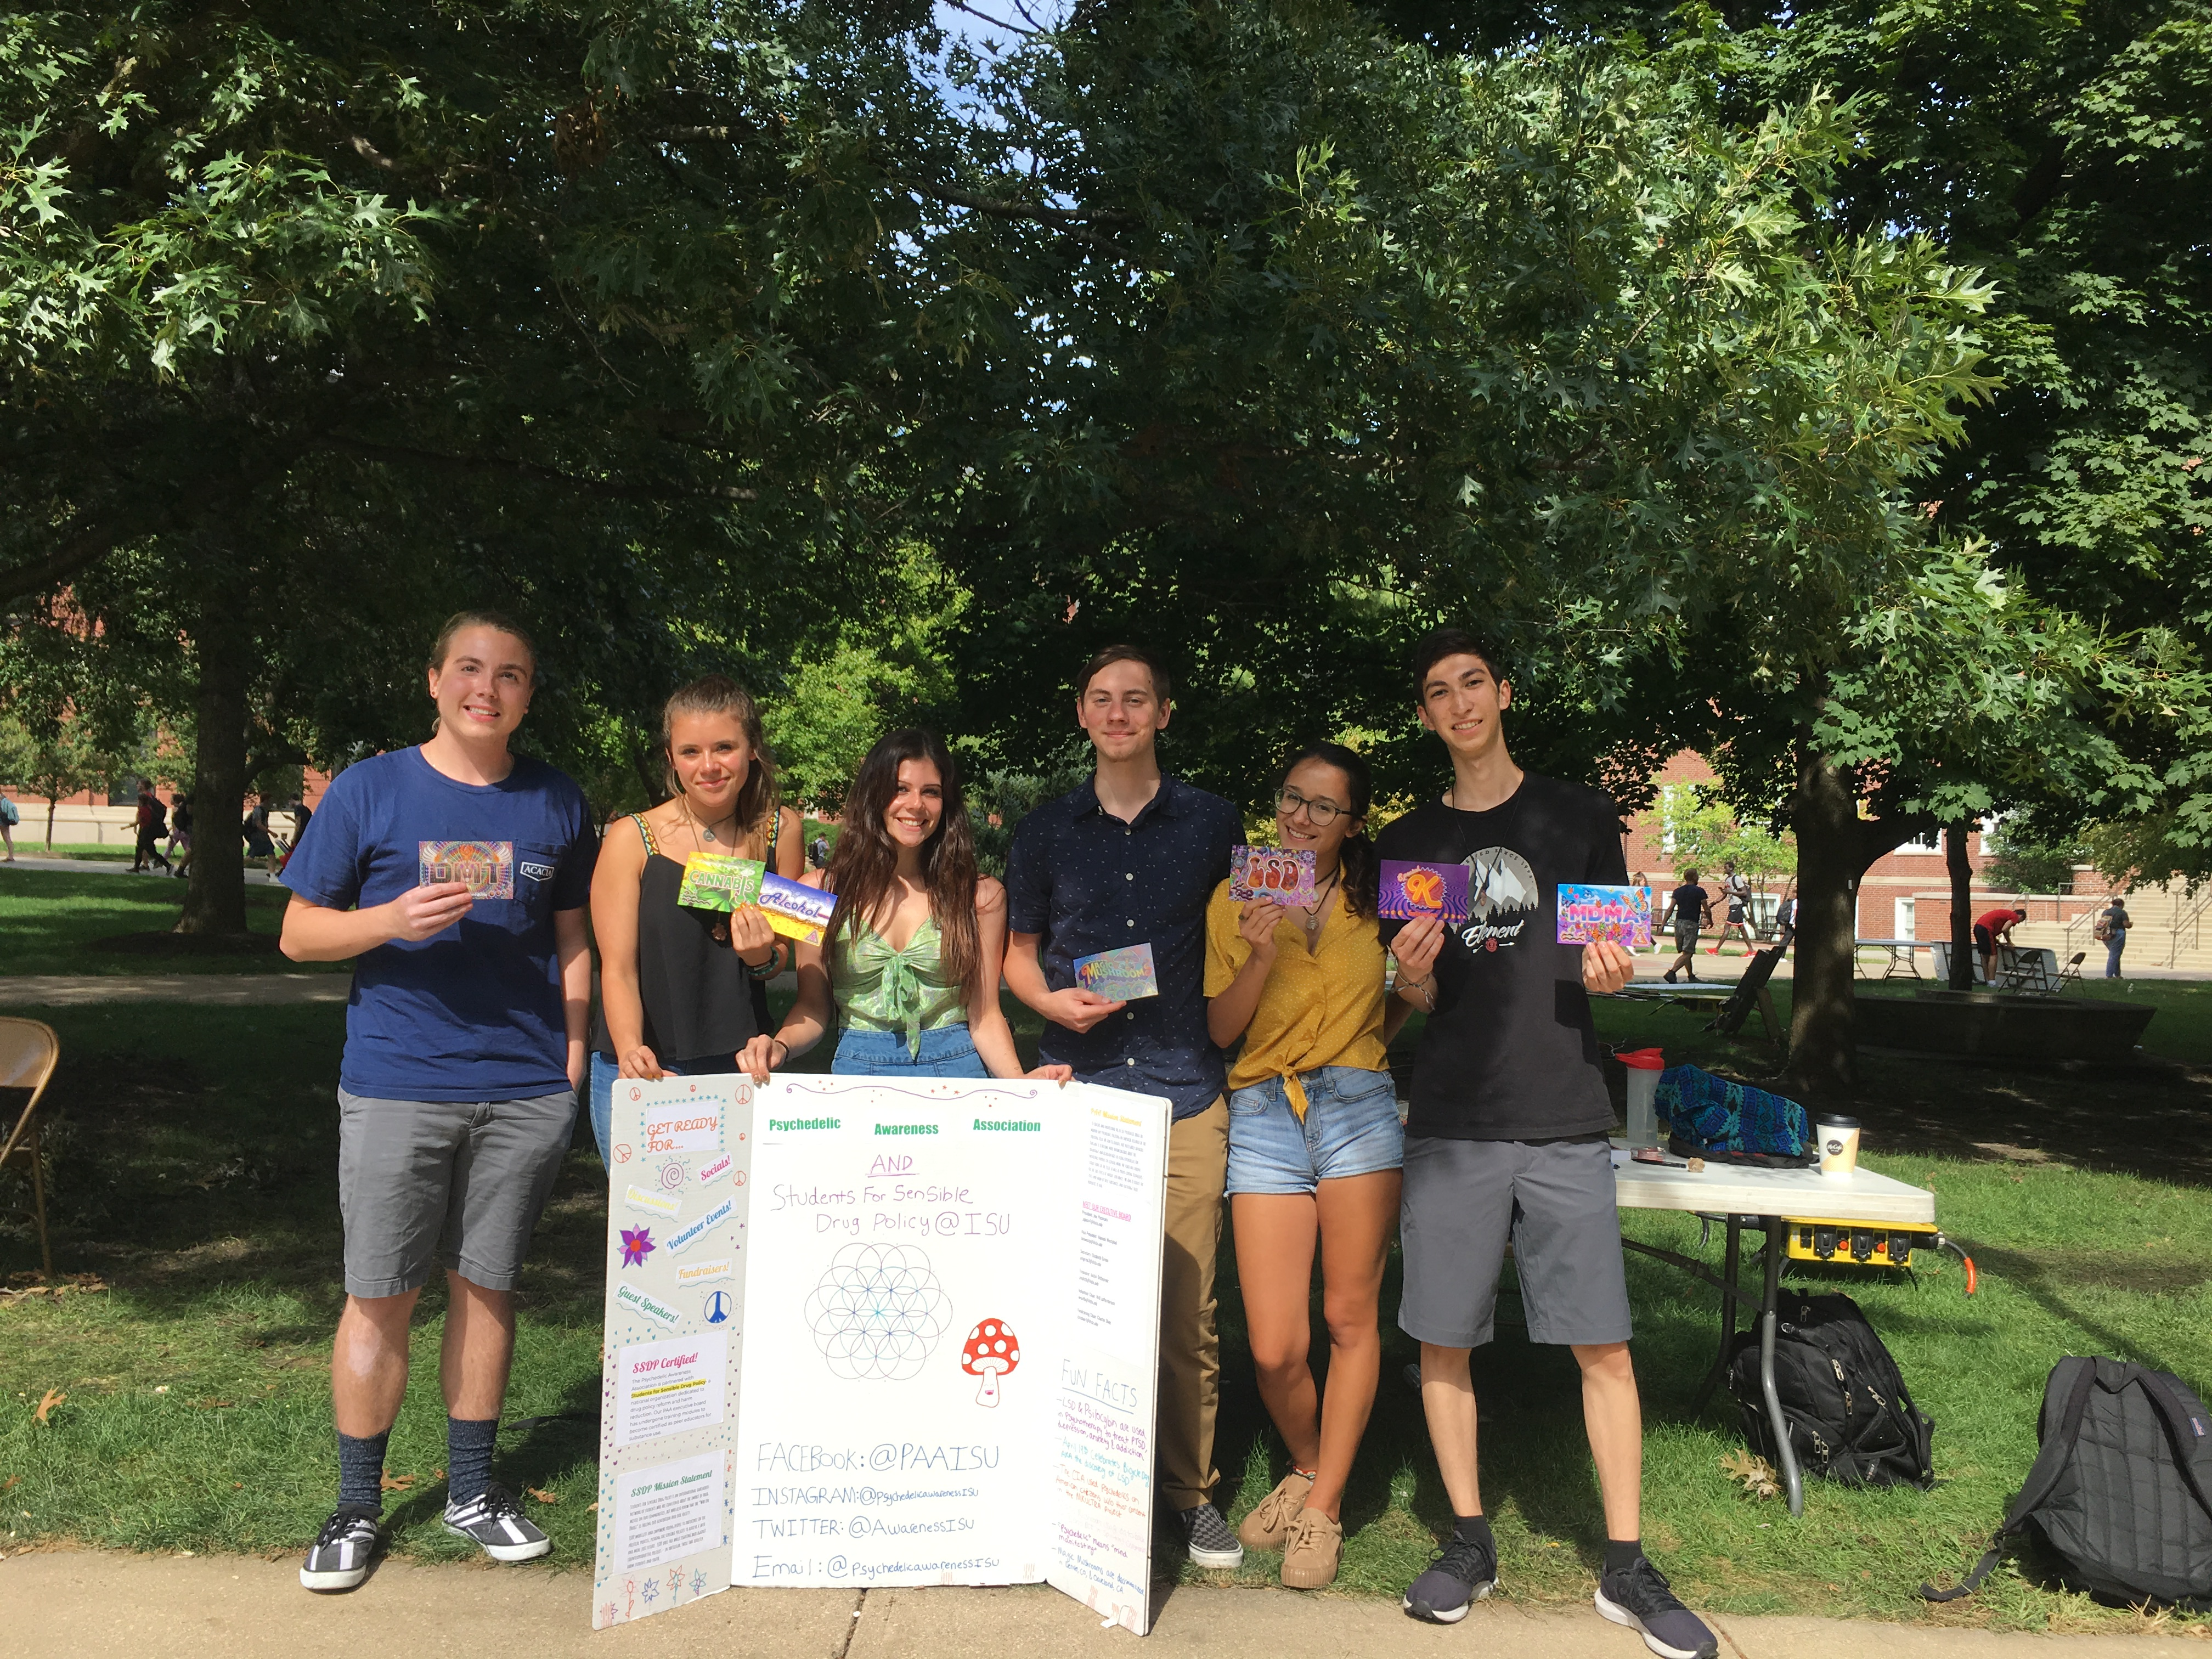 A picture of Illinois State University SSDP Executive Board members